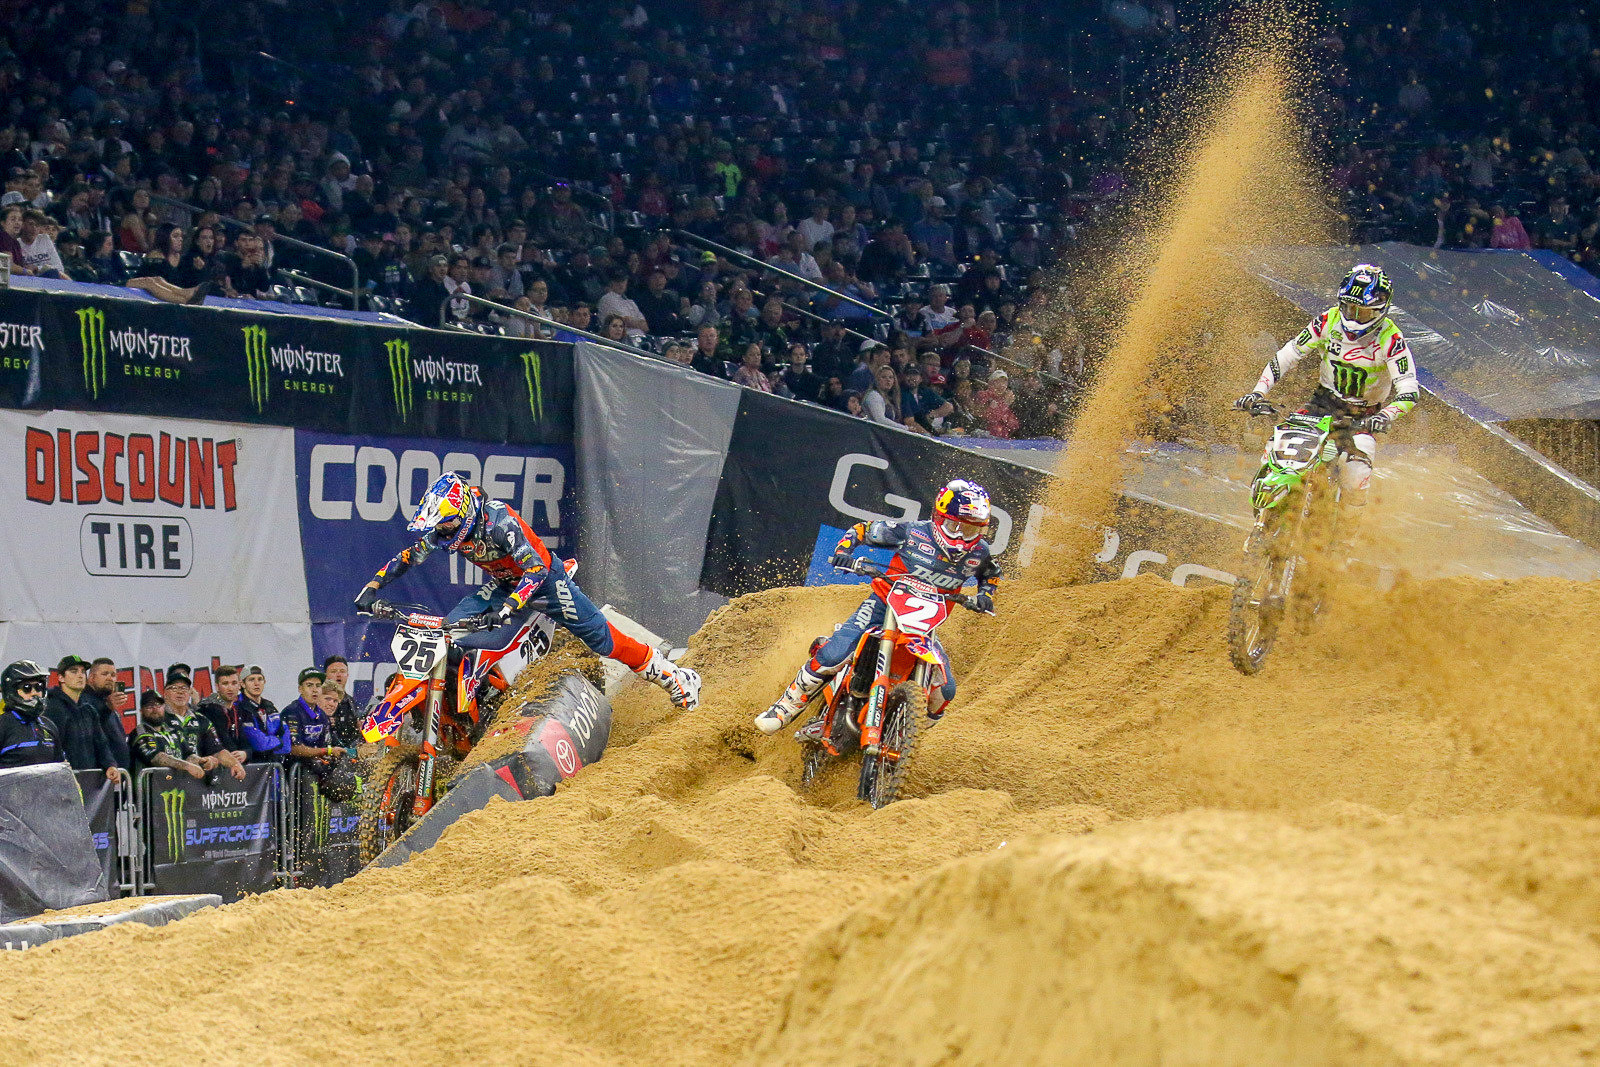 Contact between Marvin Musquin and Cooper Webb in the first moto had everyone buzzing. Cooper took the overall on the night with a 2-1-3 score.